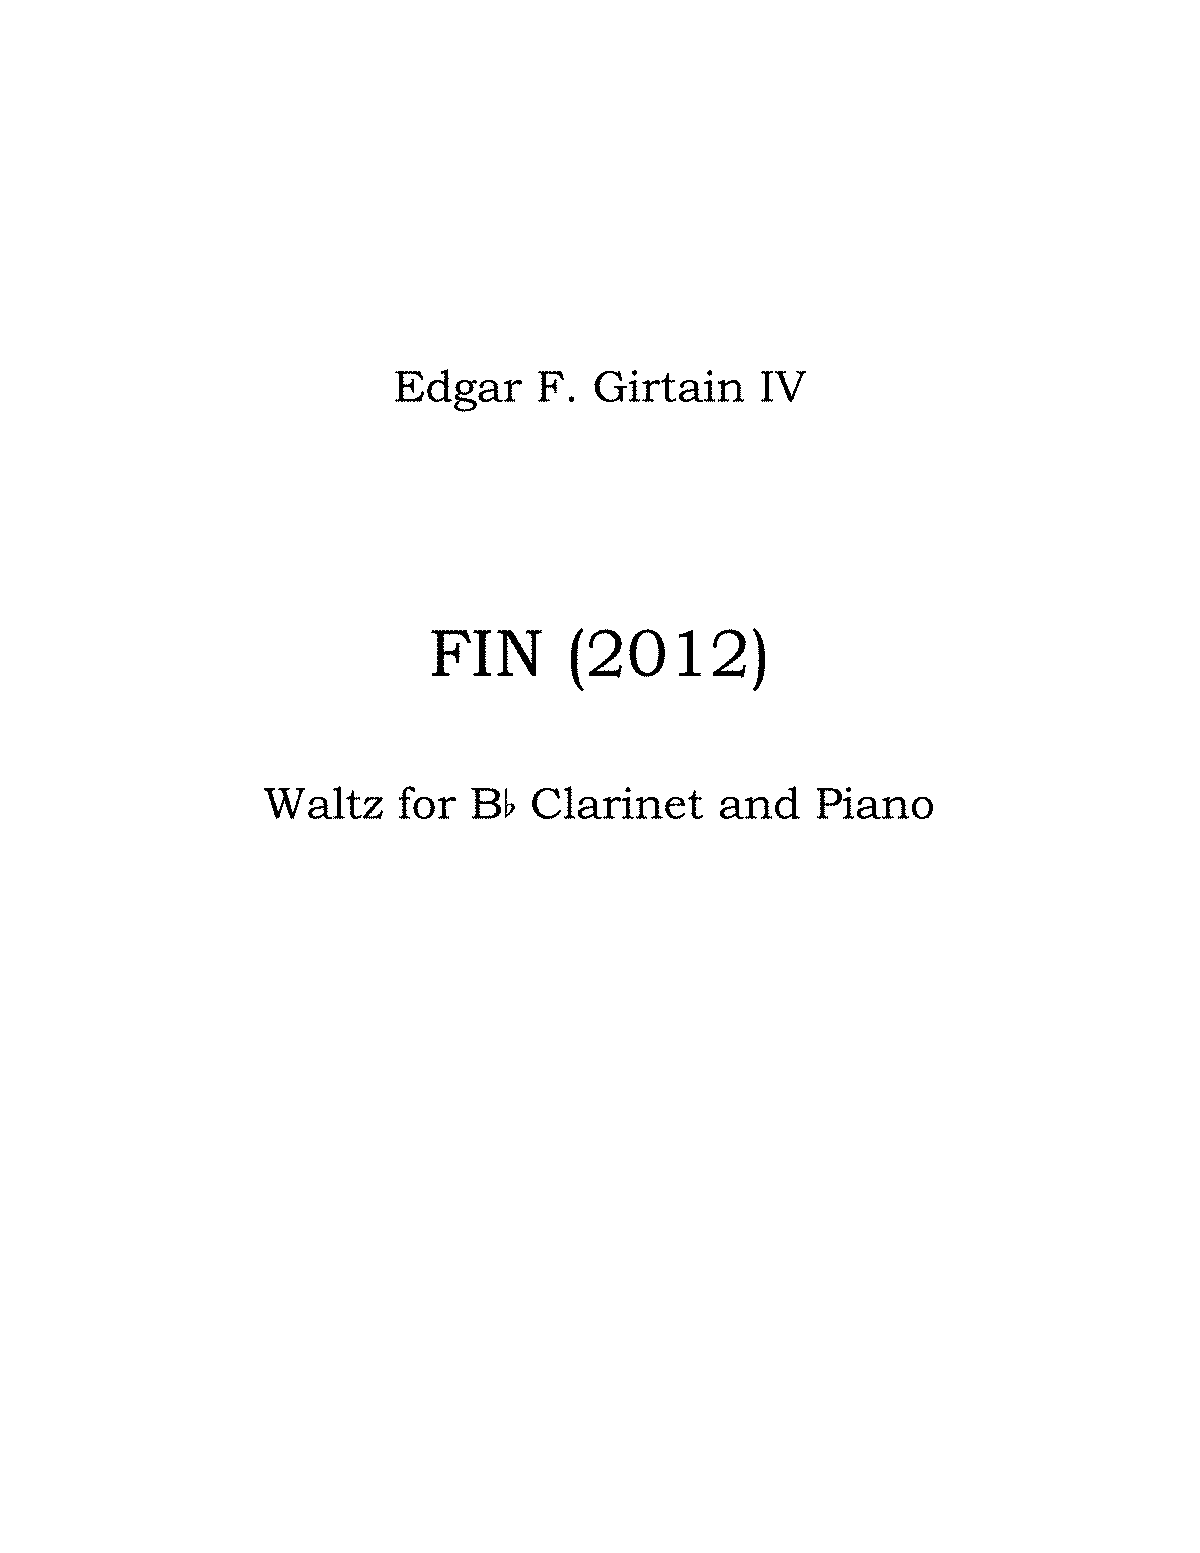 PMLP420487-Fin Waltz for Clarinet and Piano.pdf